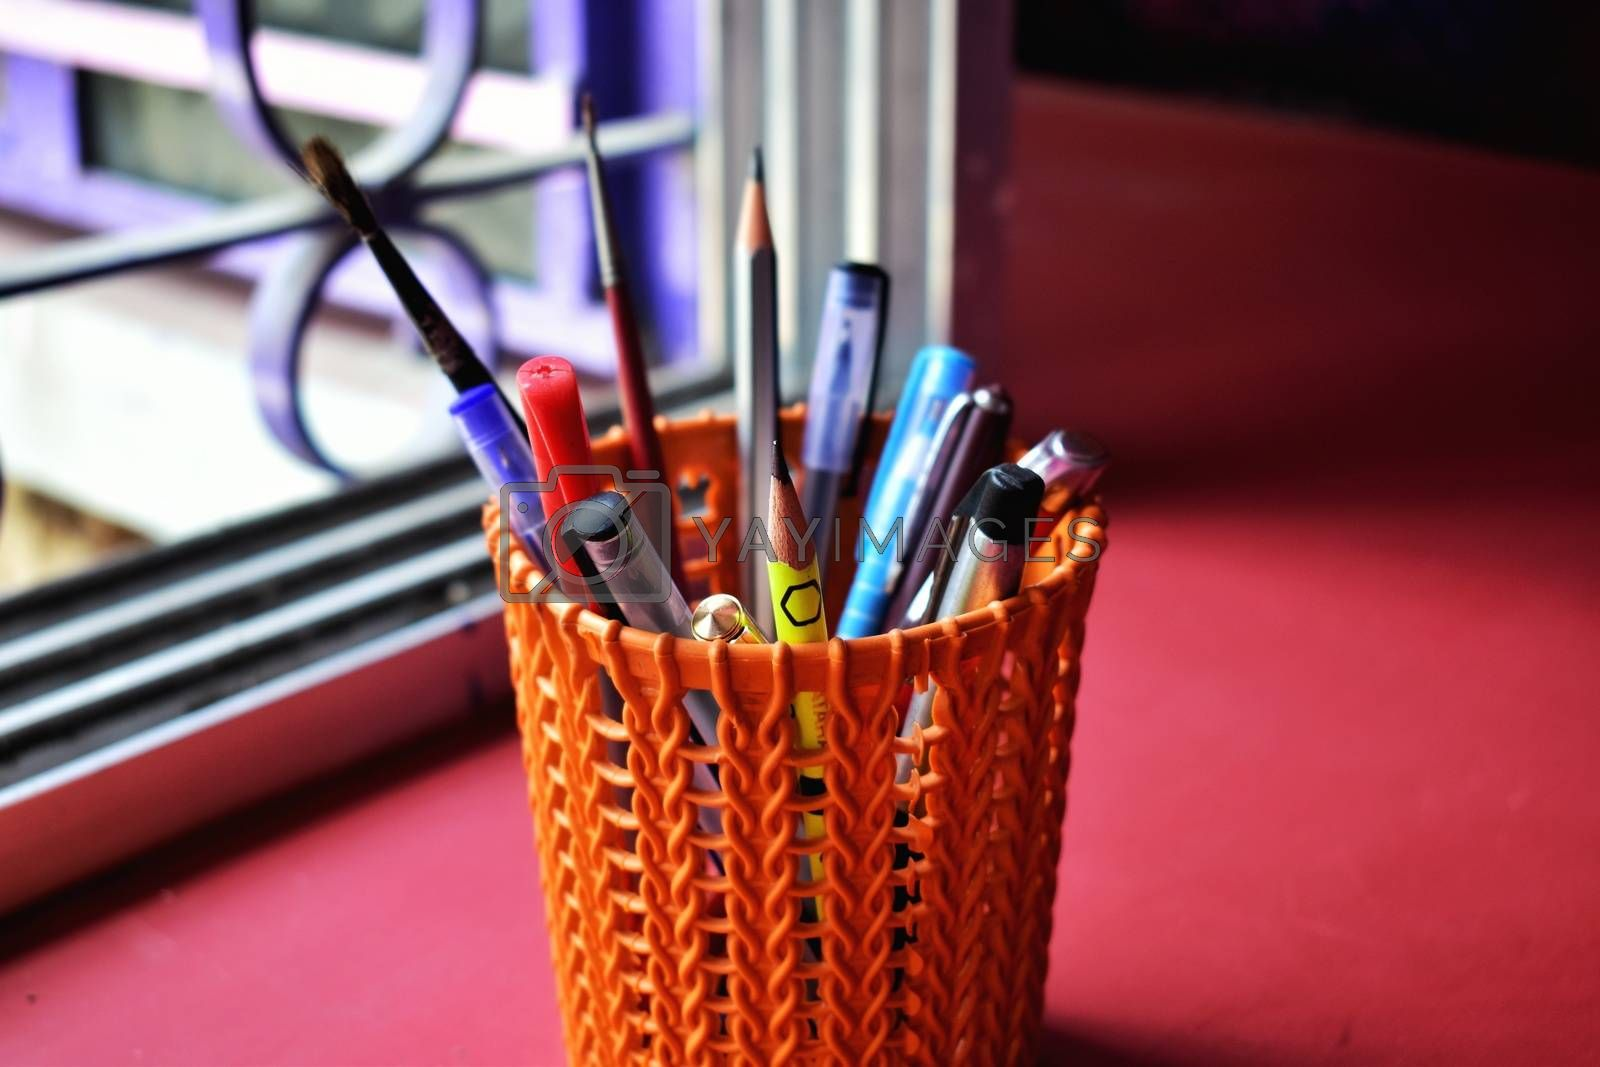 An orange colored pen case with many types of pens and pencils and some paint brush